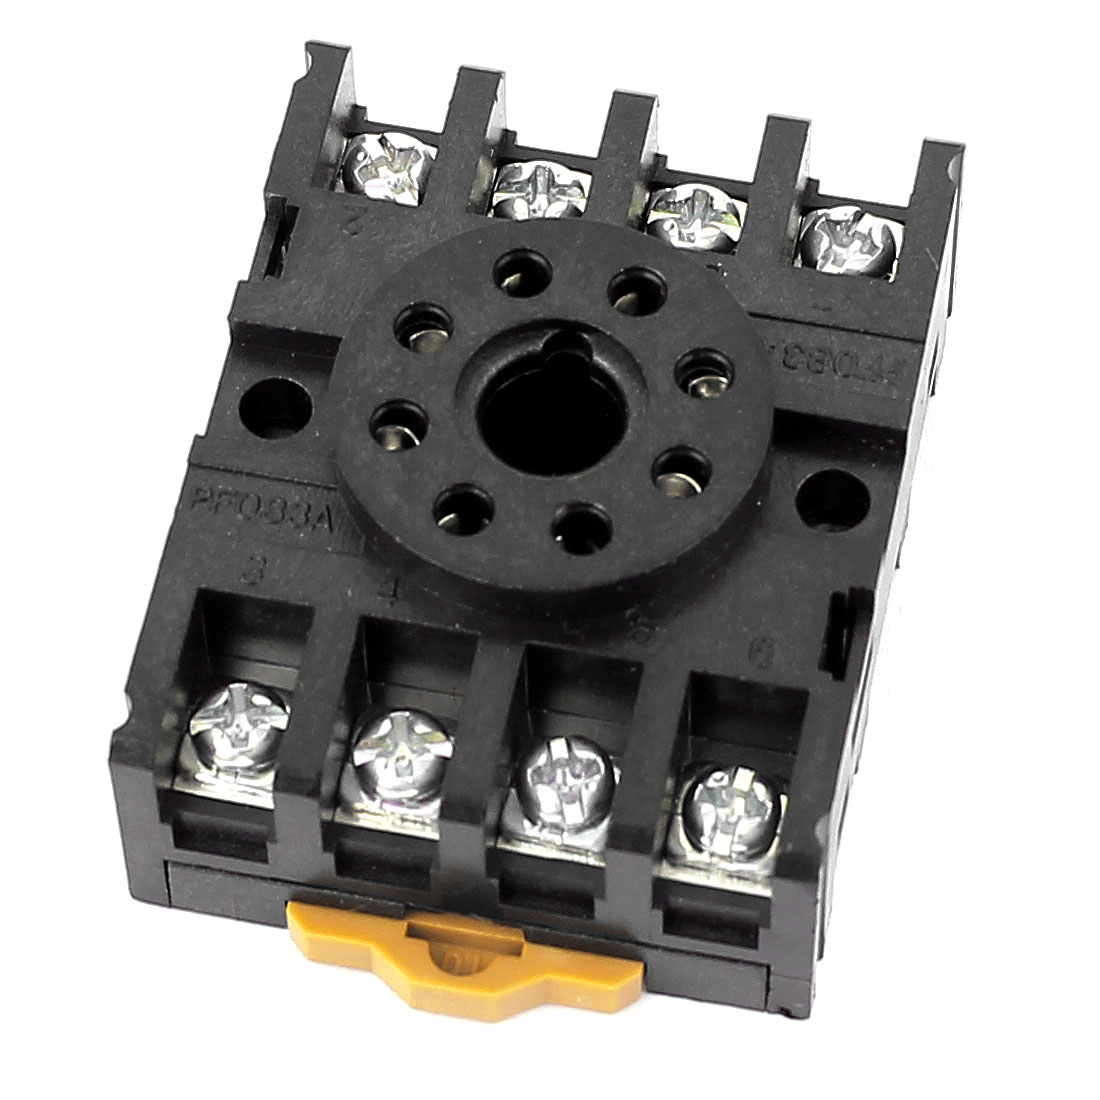 PF083A 12A AC 300V 8 Round Pin Rail Mount Power Relay Socket Base